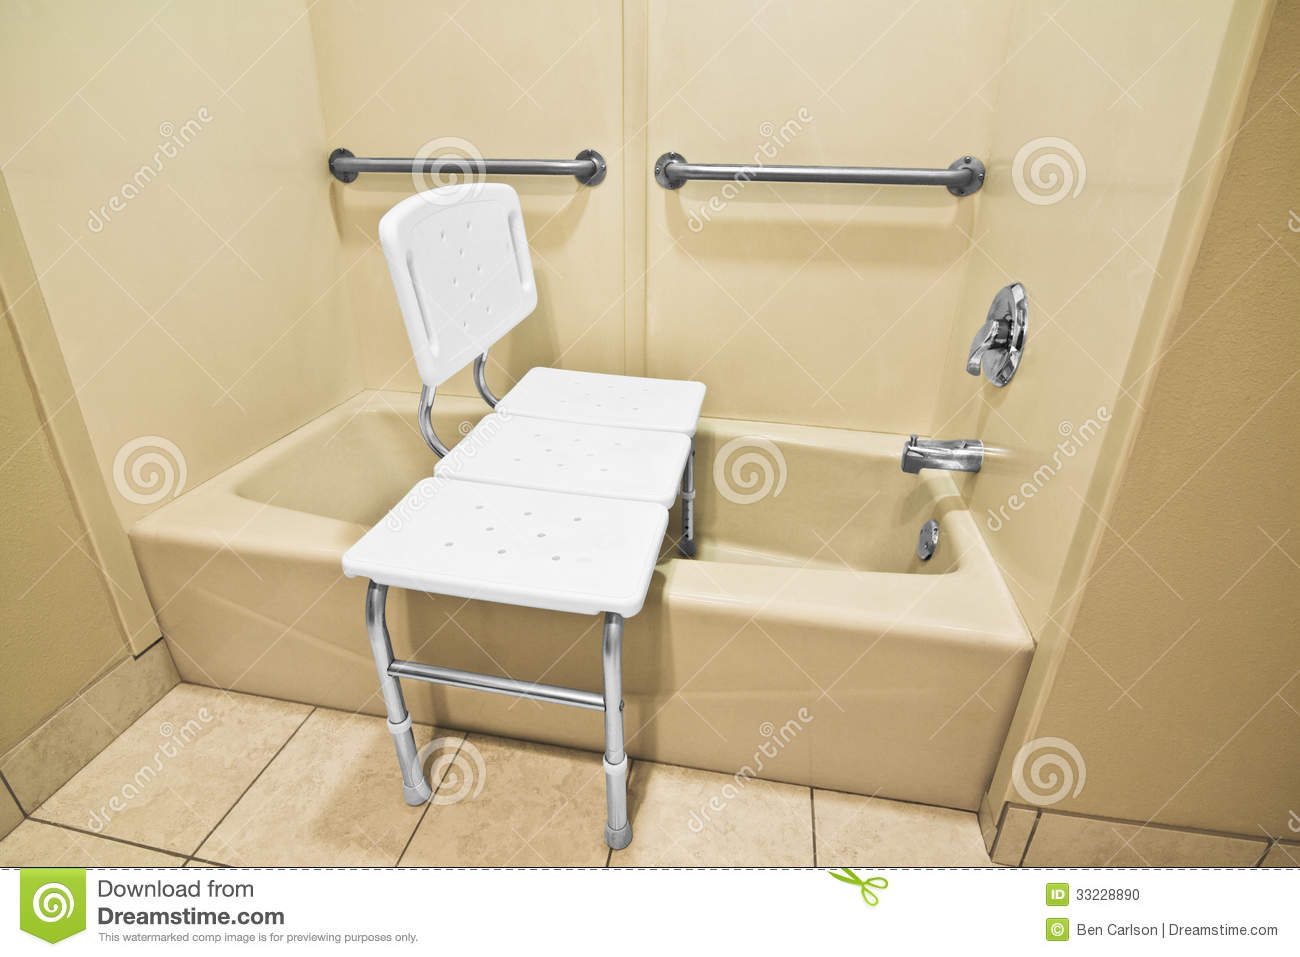 The Chair Helps The Disabled And Handicap Use The Bathtub Easier With